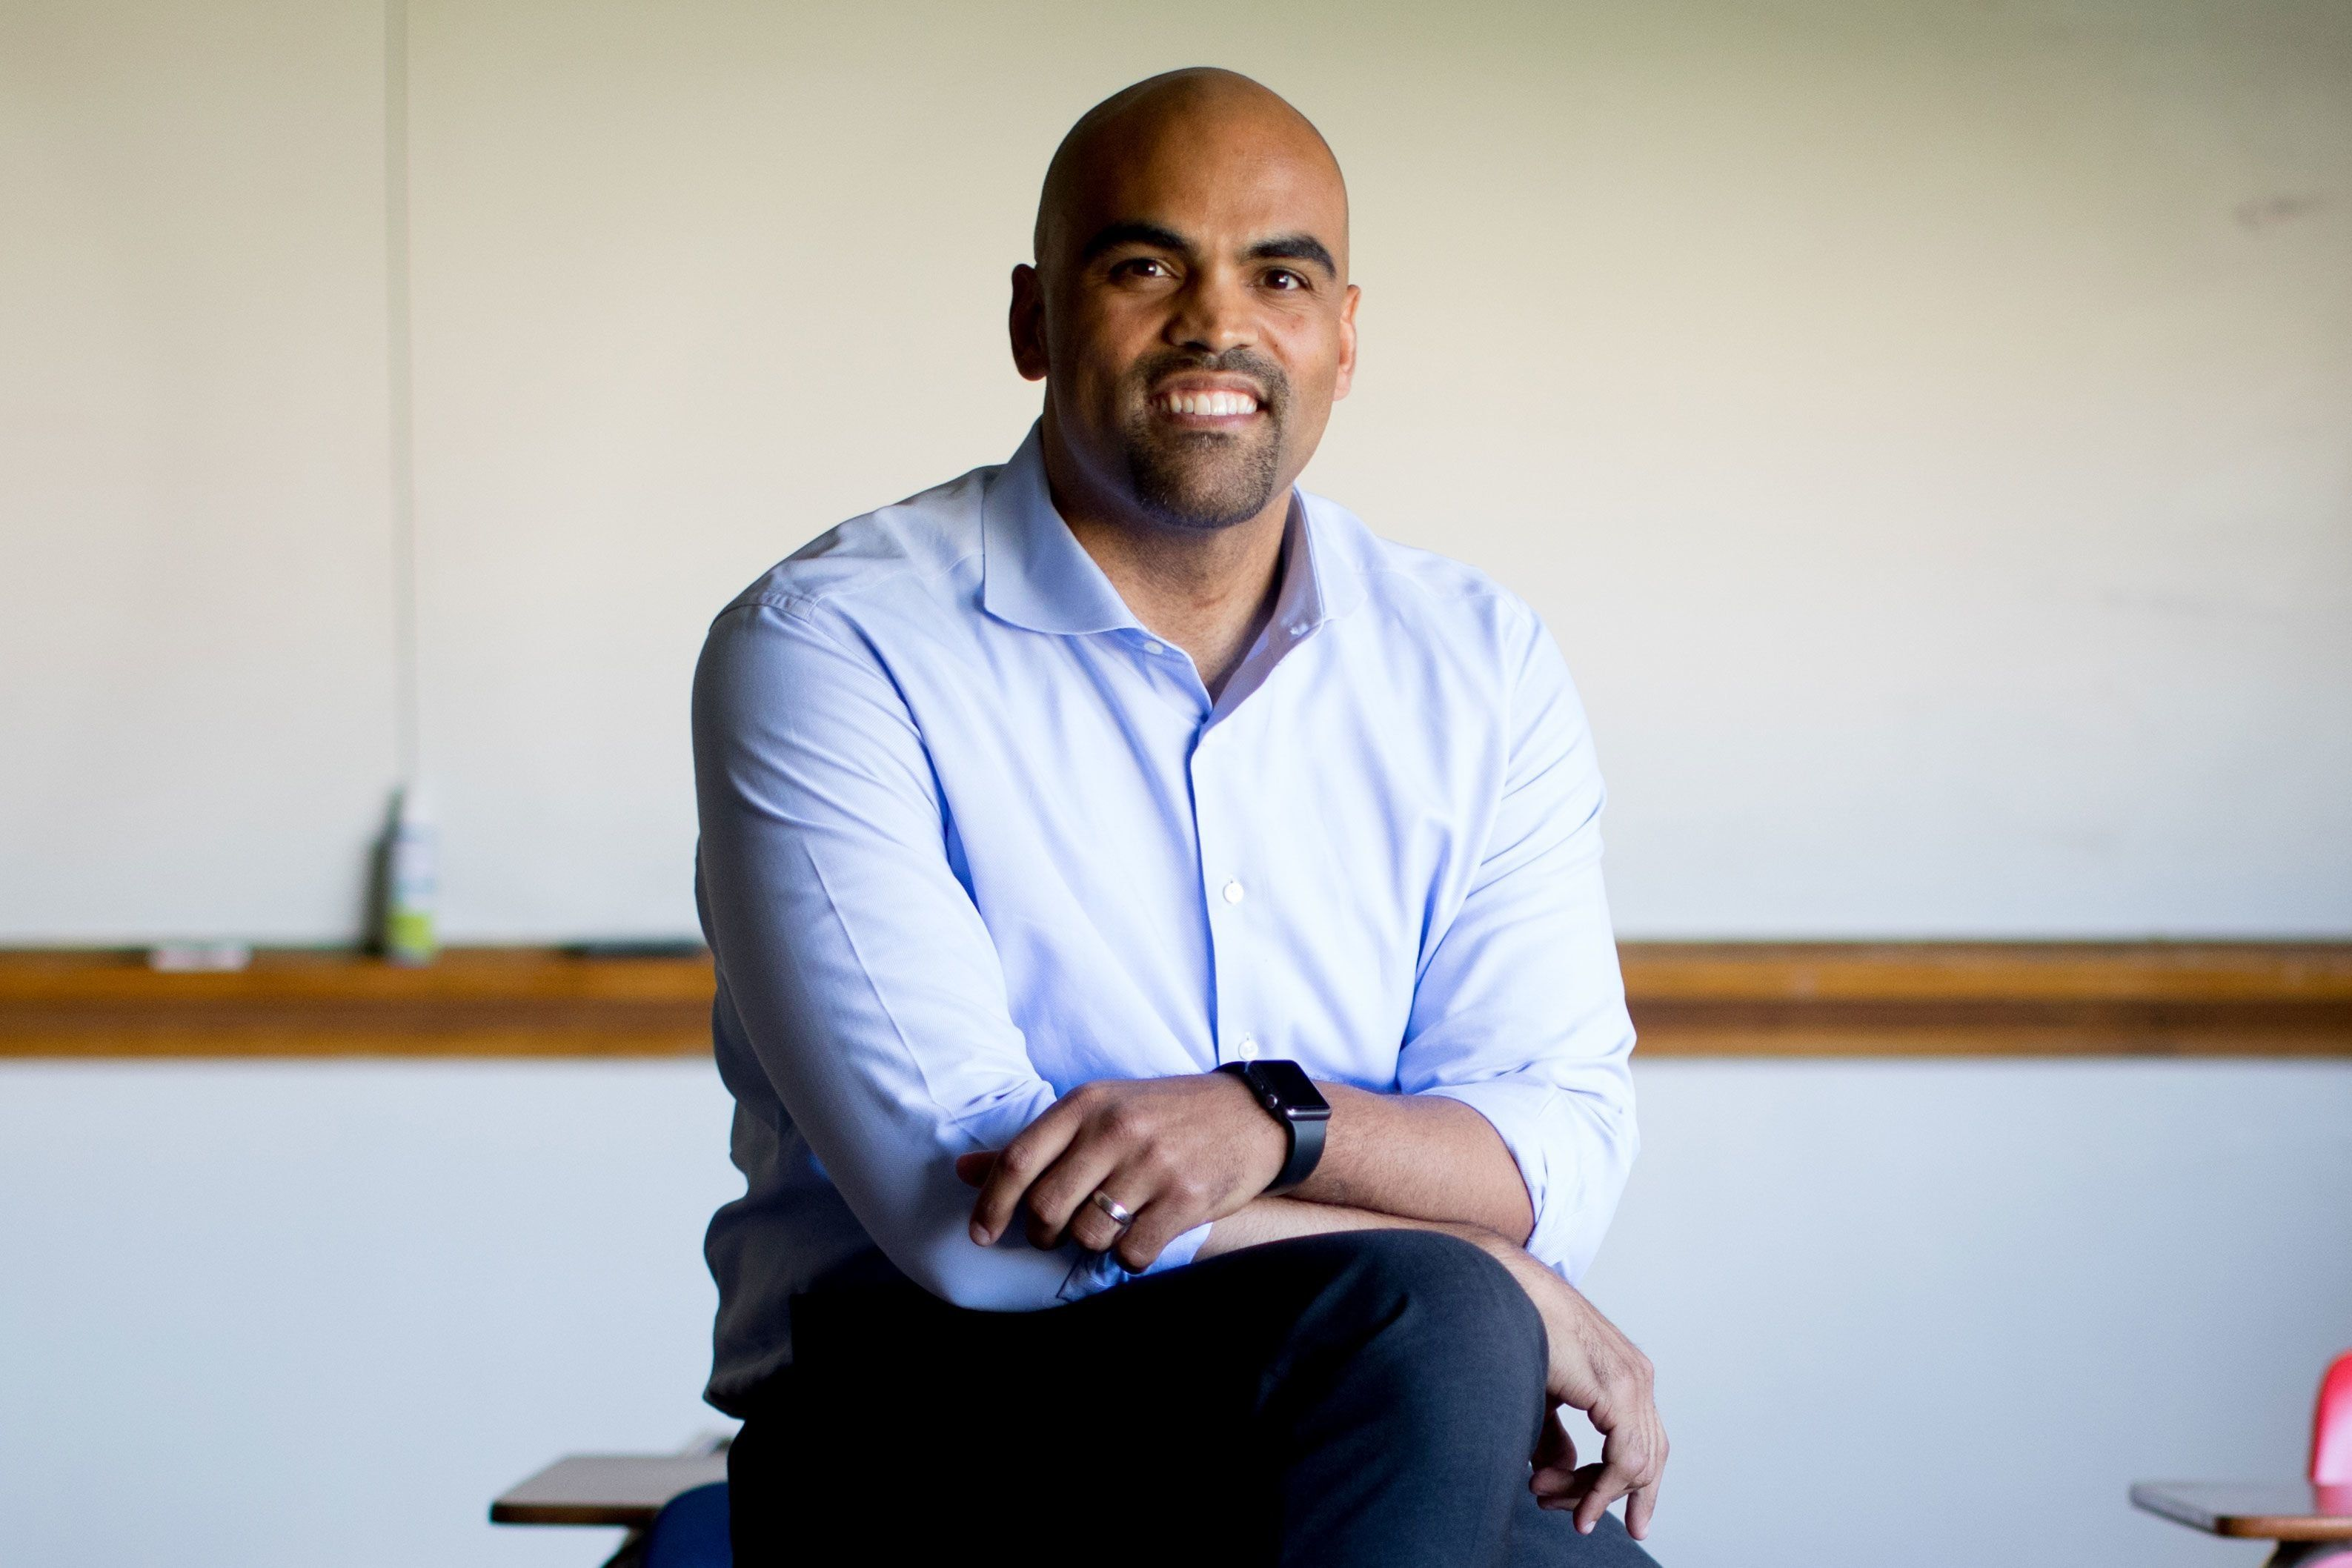 NBC News is projecting that Democrat and former NFL linebacker Colin Allred will unseat longtime Republican Rep. Pete Sessions in Texas' 32nd District.